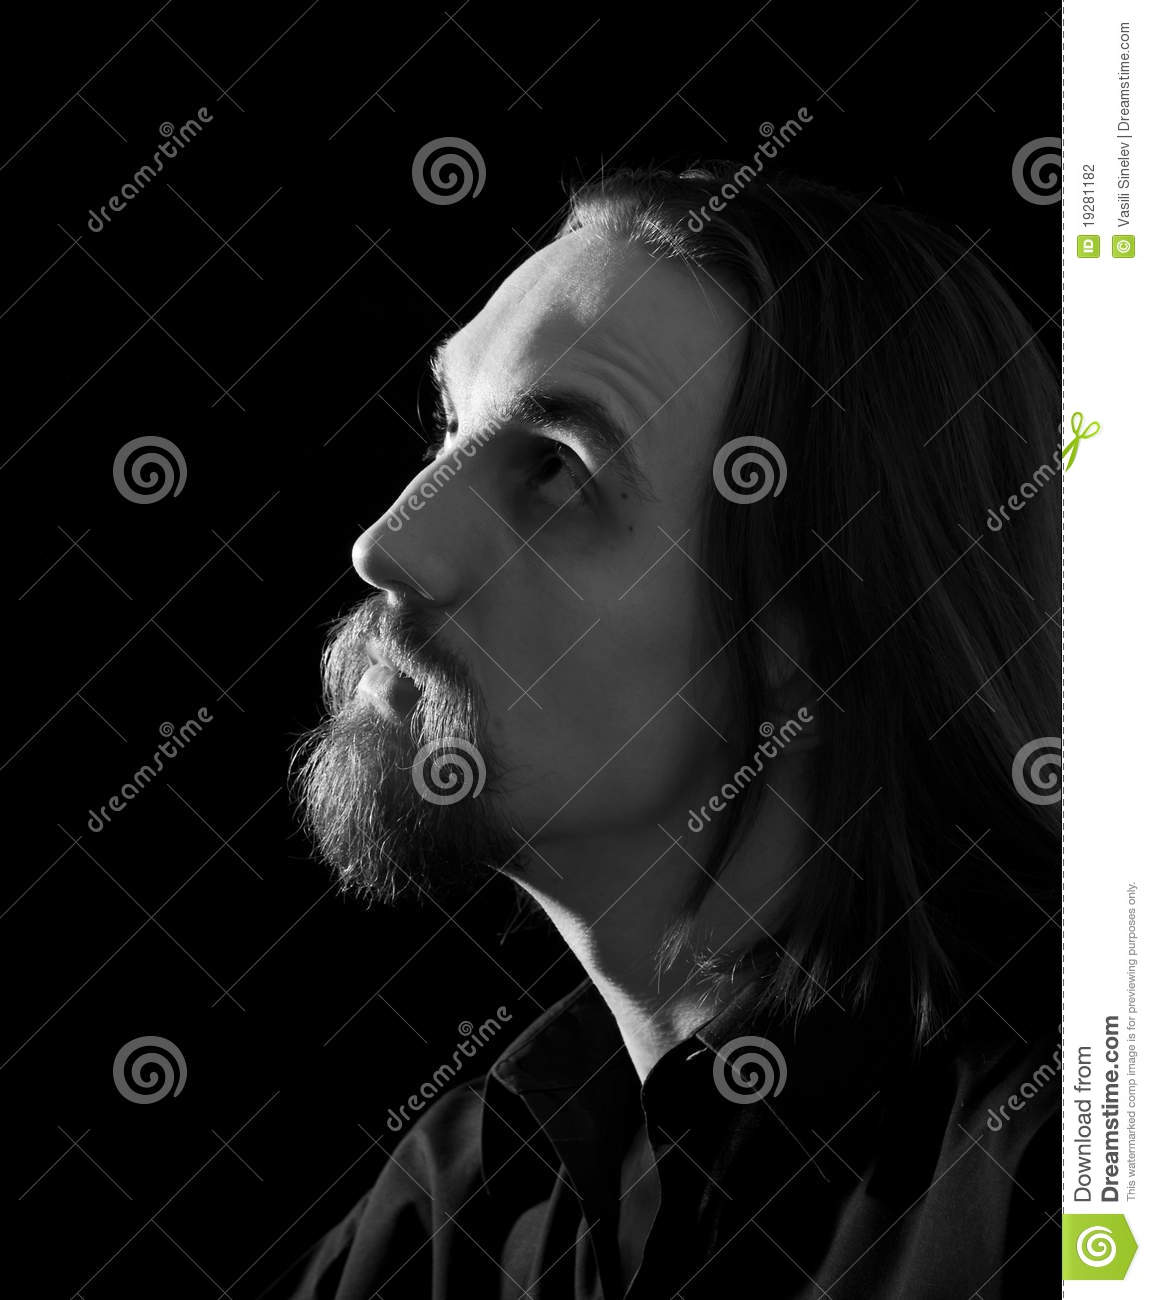 Man looking up profile